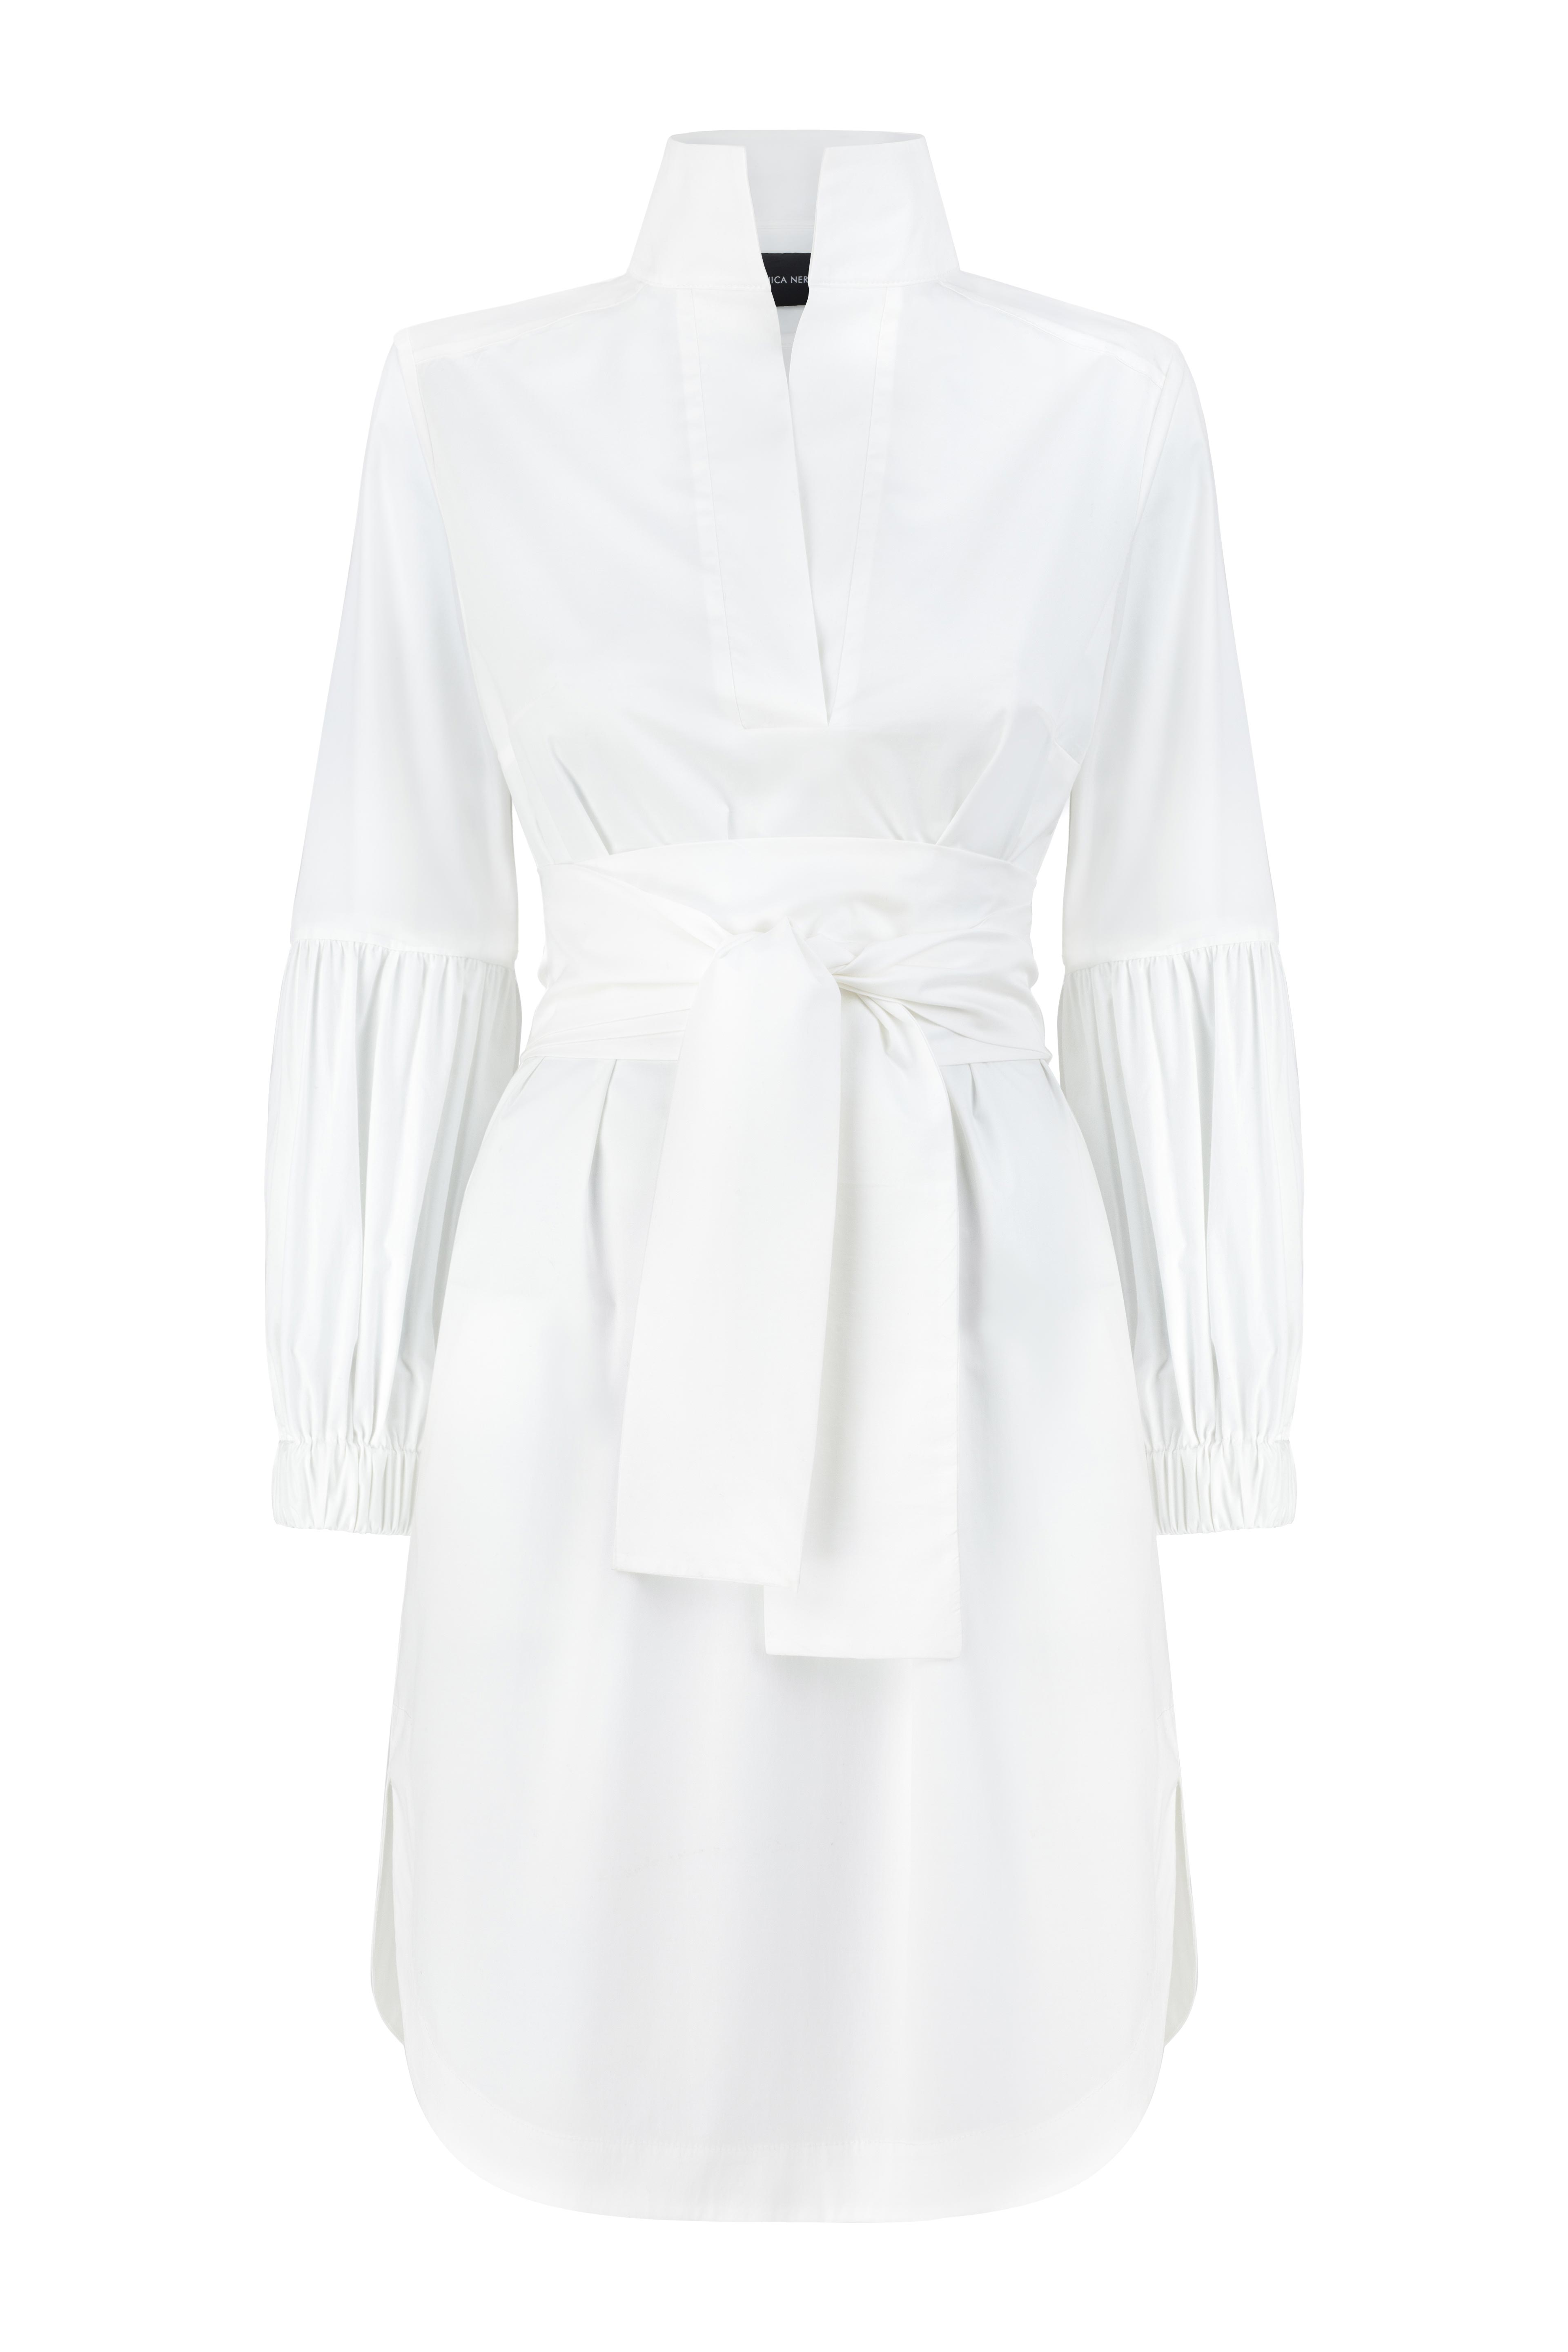 Colette Dress by Monica Nera on curated-crowd.com